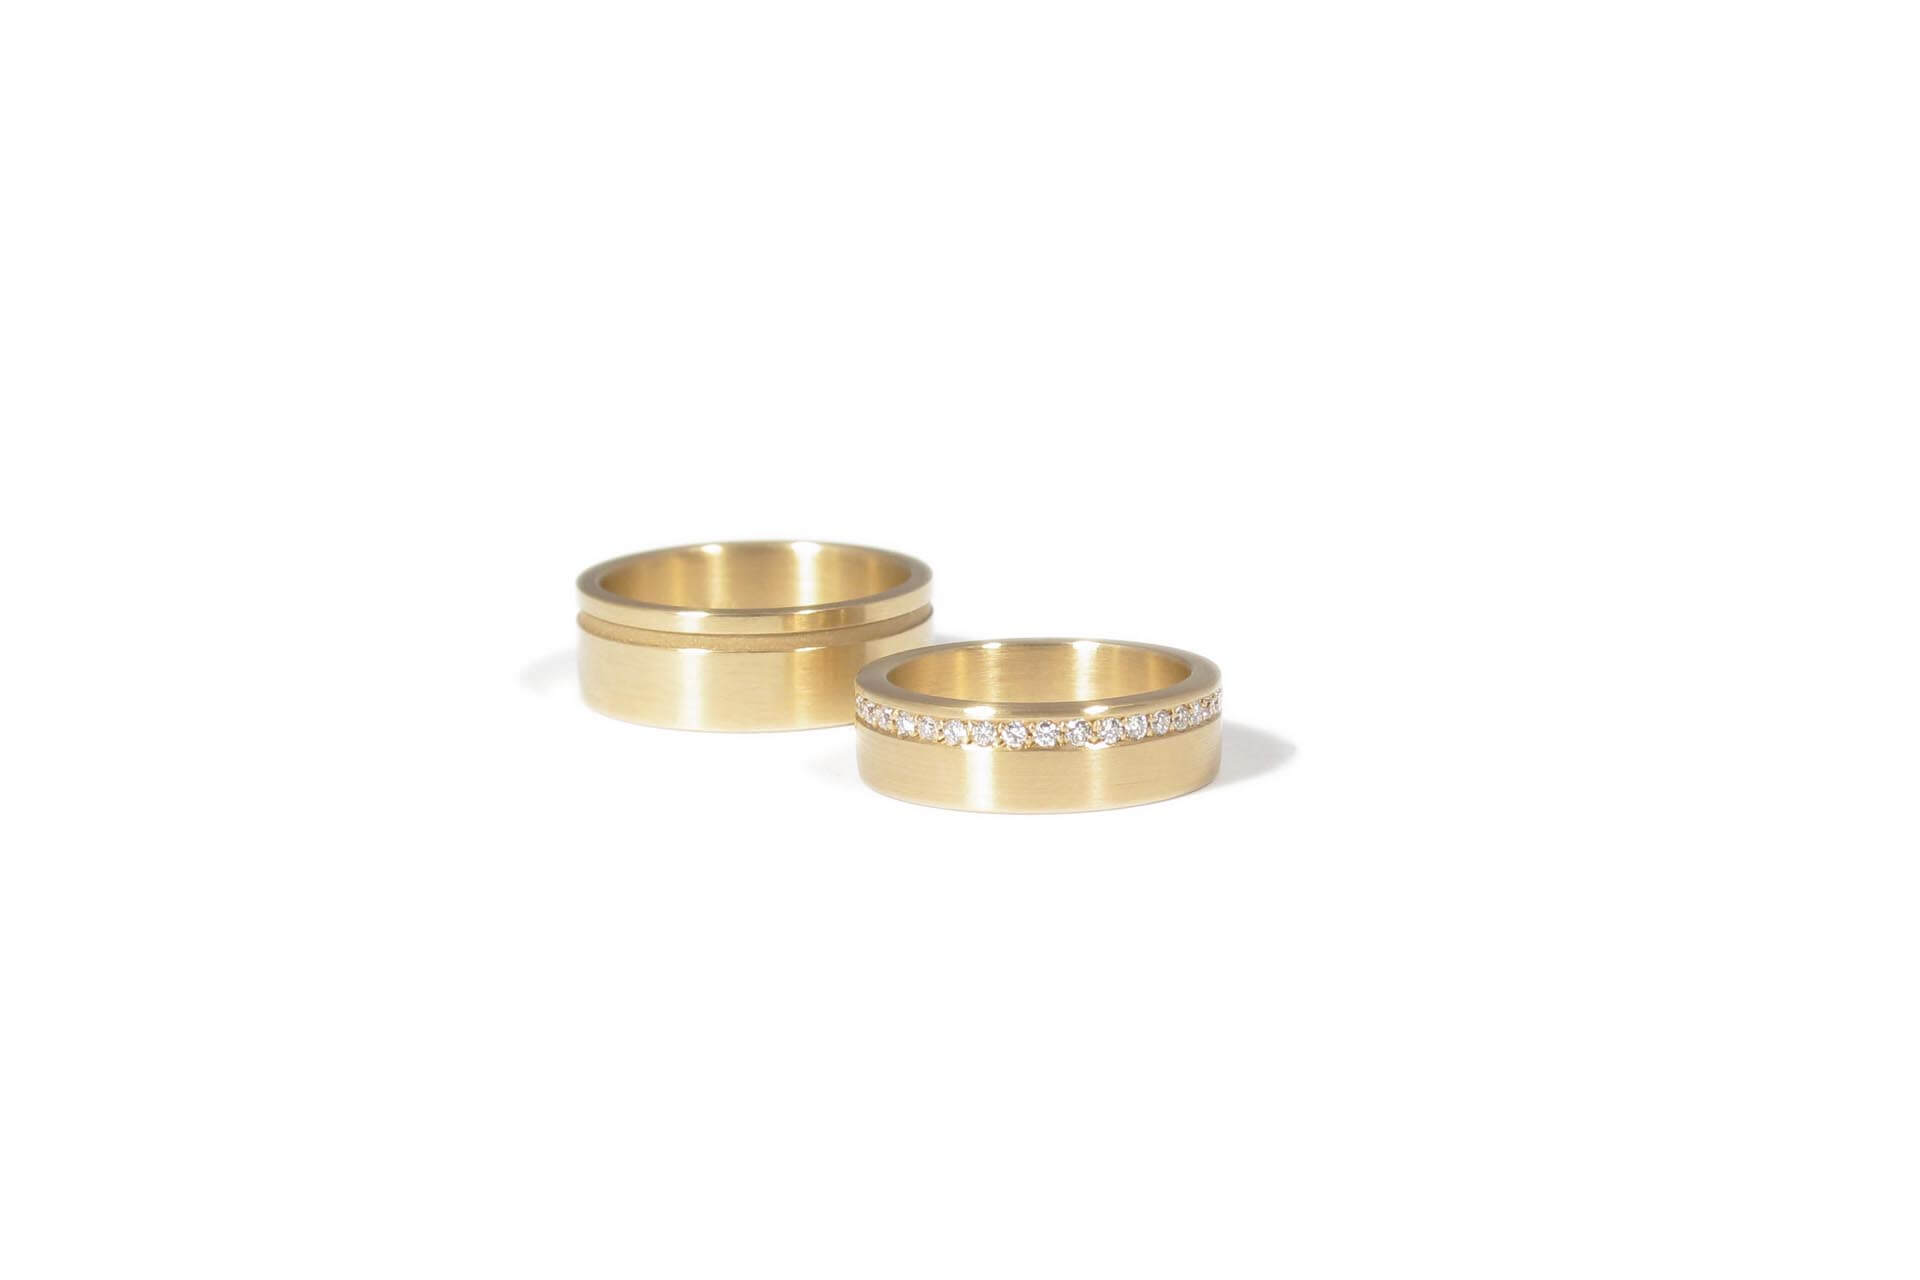 Two yellow gold rings, one with diamonds